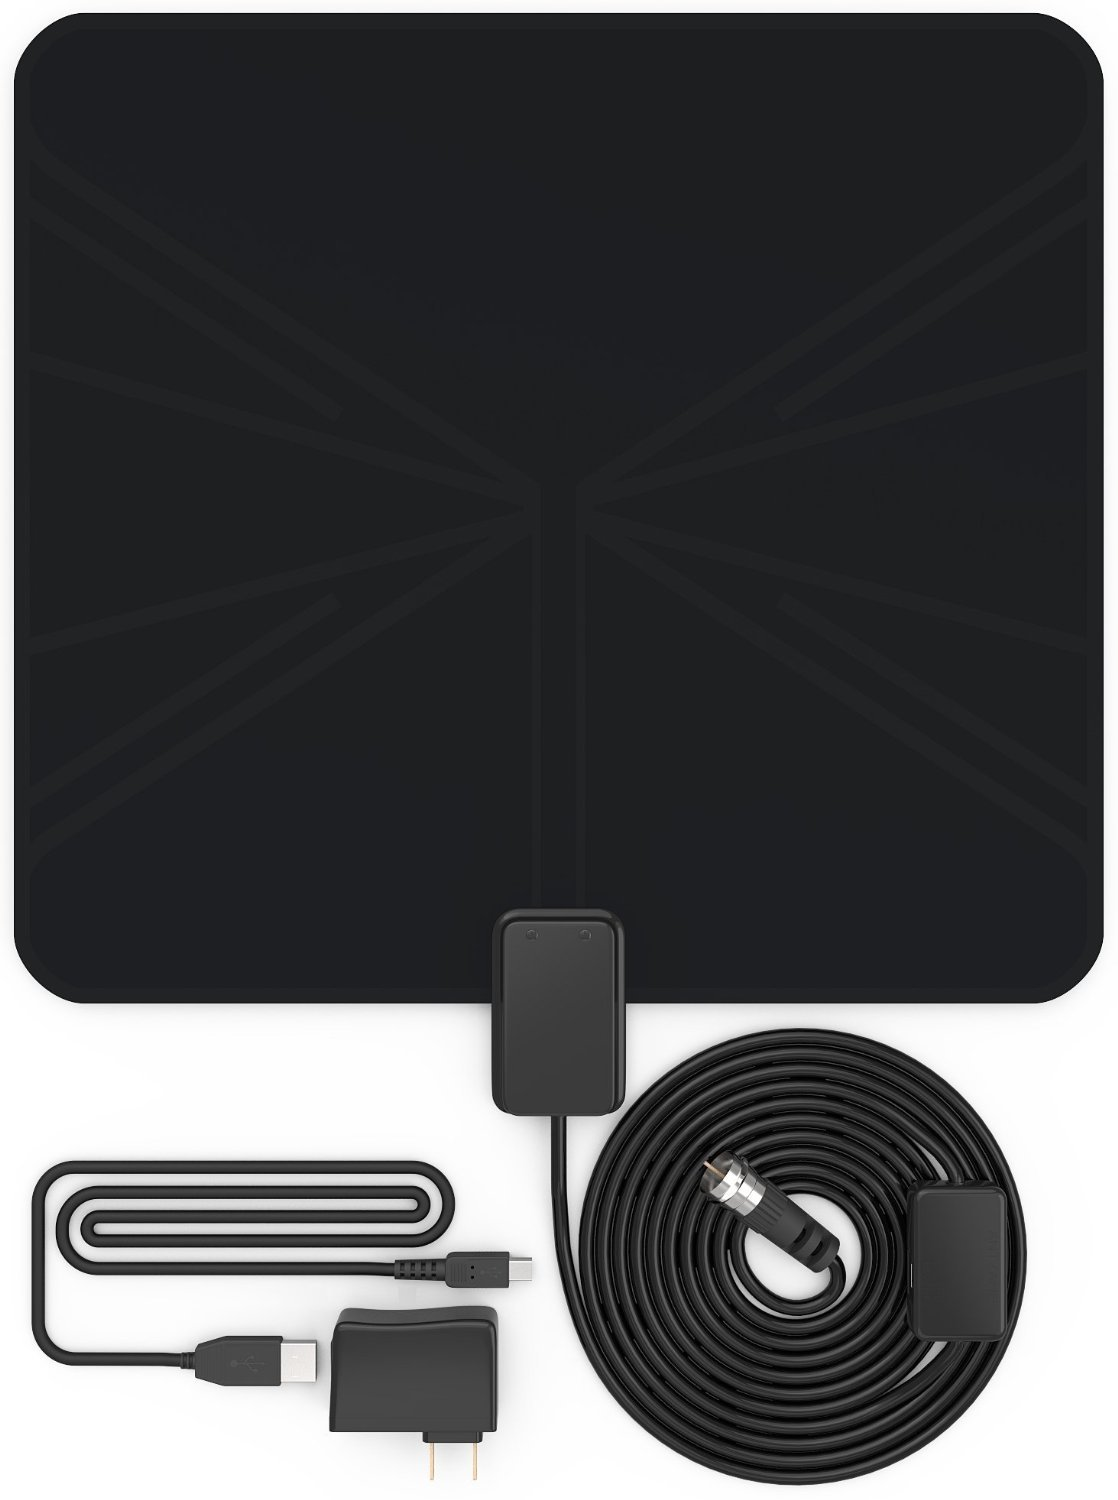 The Best HDTV Antenna 2